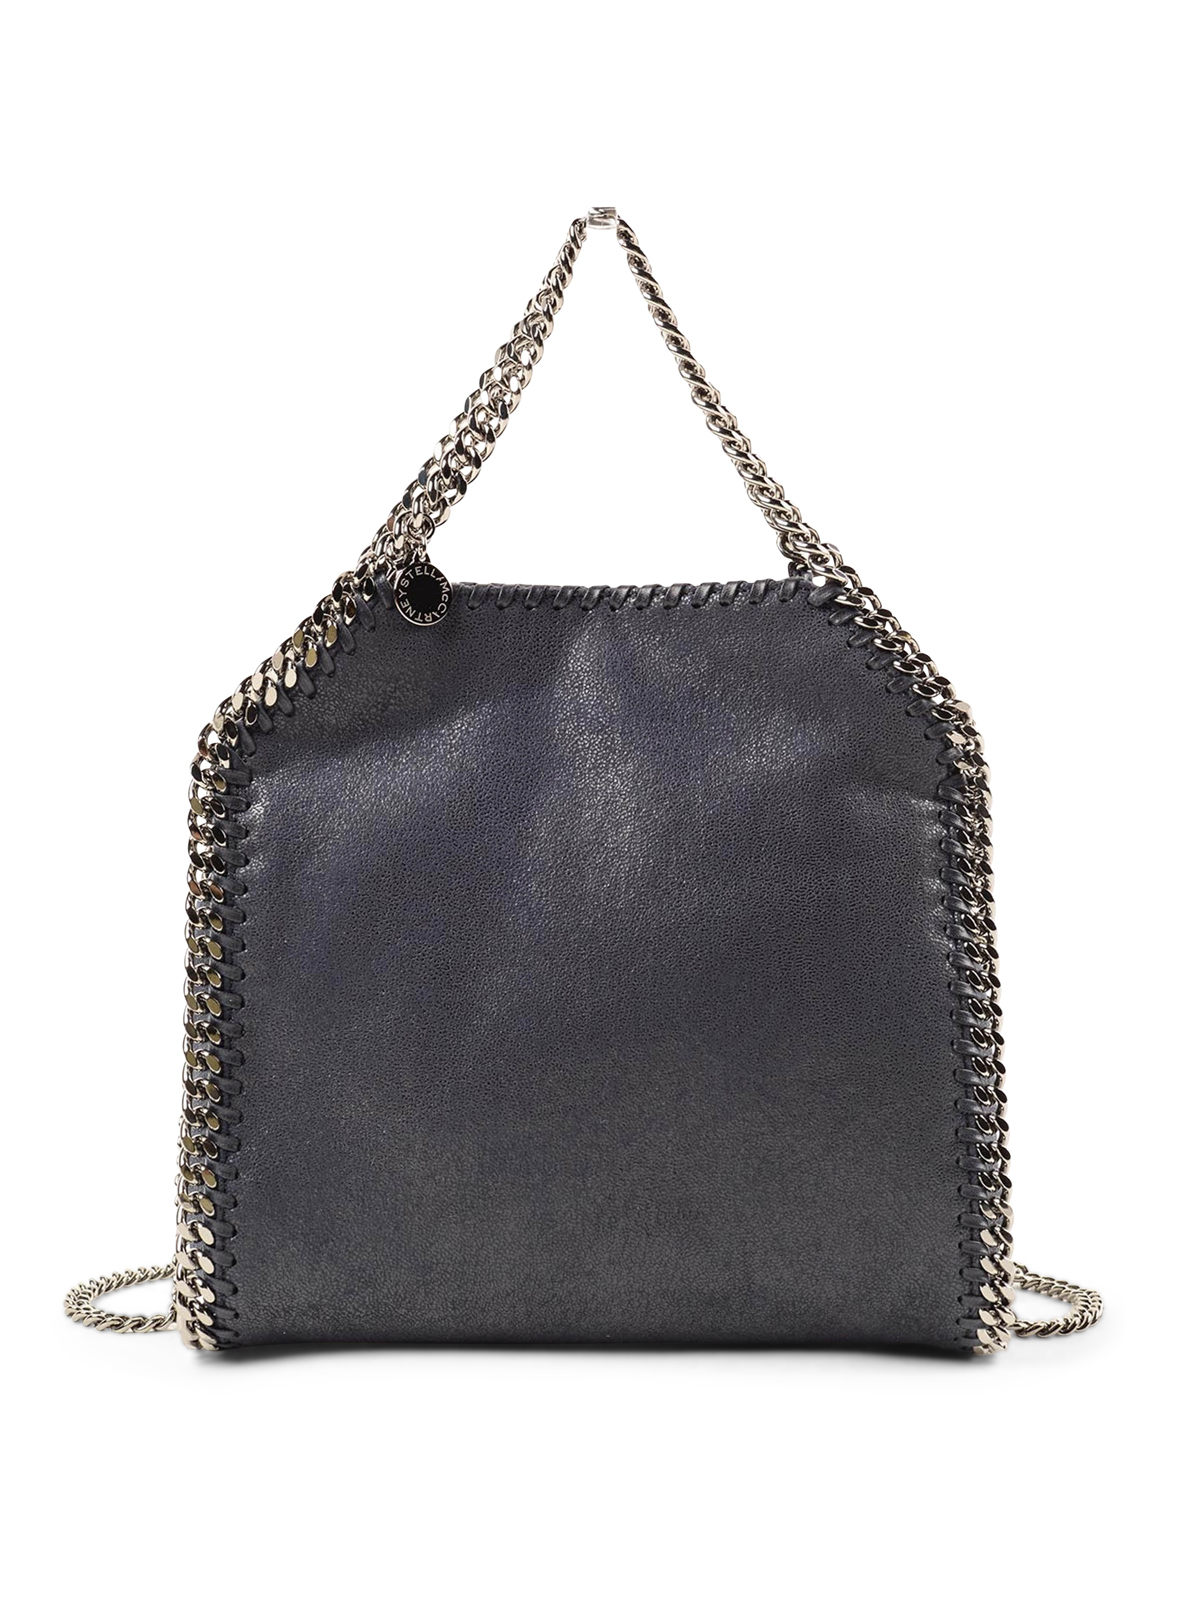 Falabella mini bag by Stella Mccartney